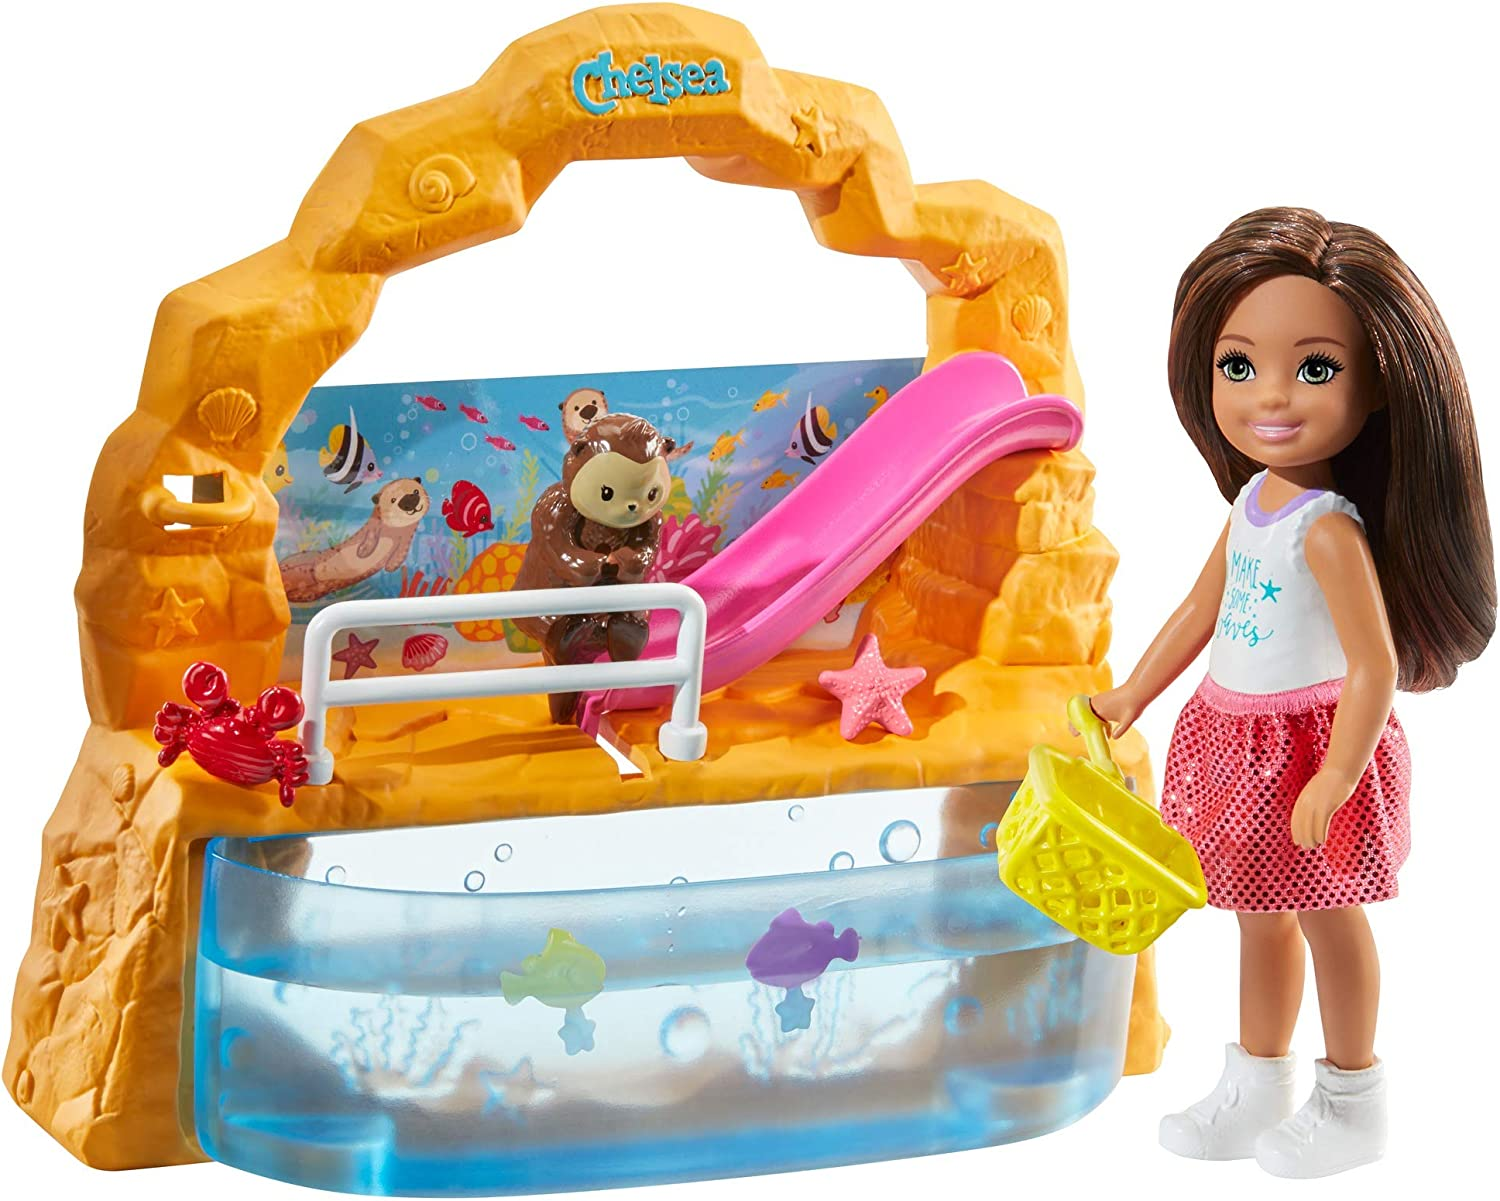 ​Barbie Club Chelsea Doll and Aquarium Playset, 6-Inch Brunette, with Accessories, Gift for 3 to 7 Year Olds